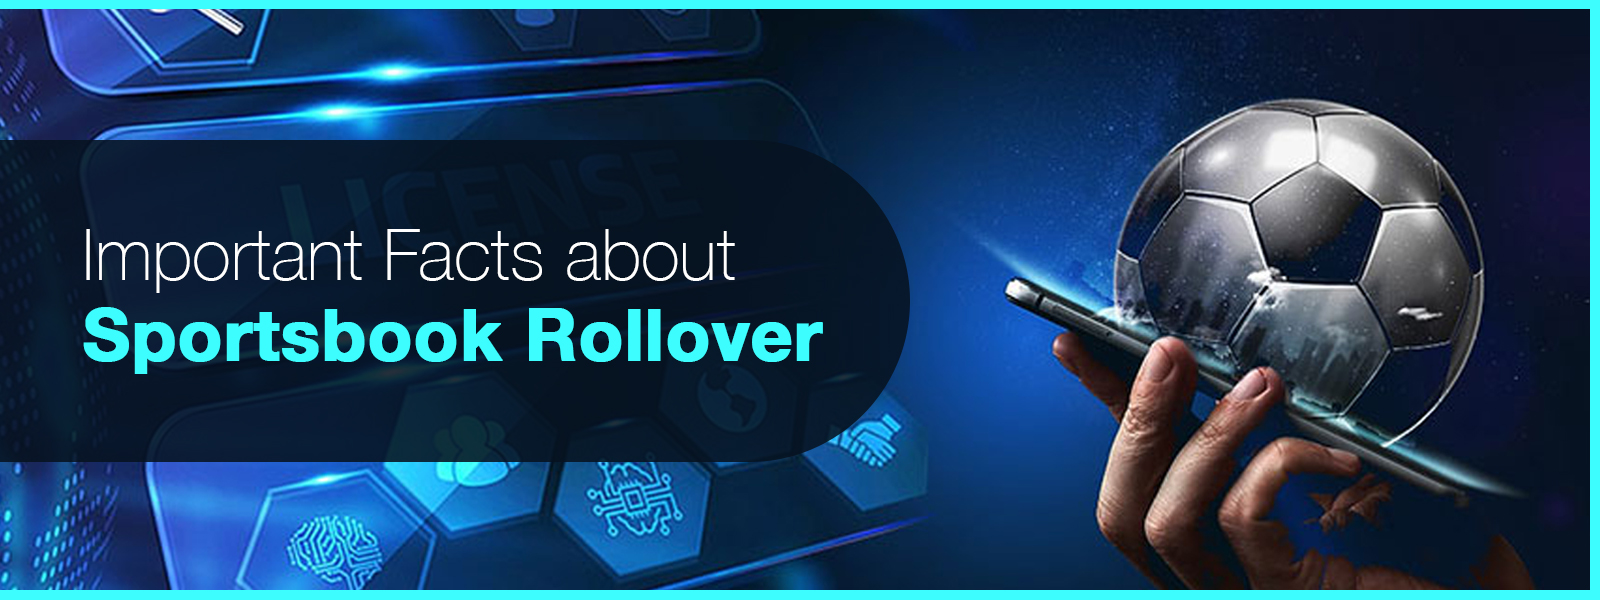 Important Facts About Sportsbook Rollover